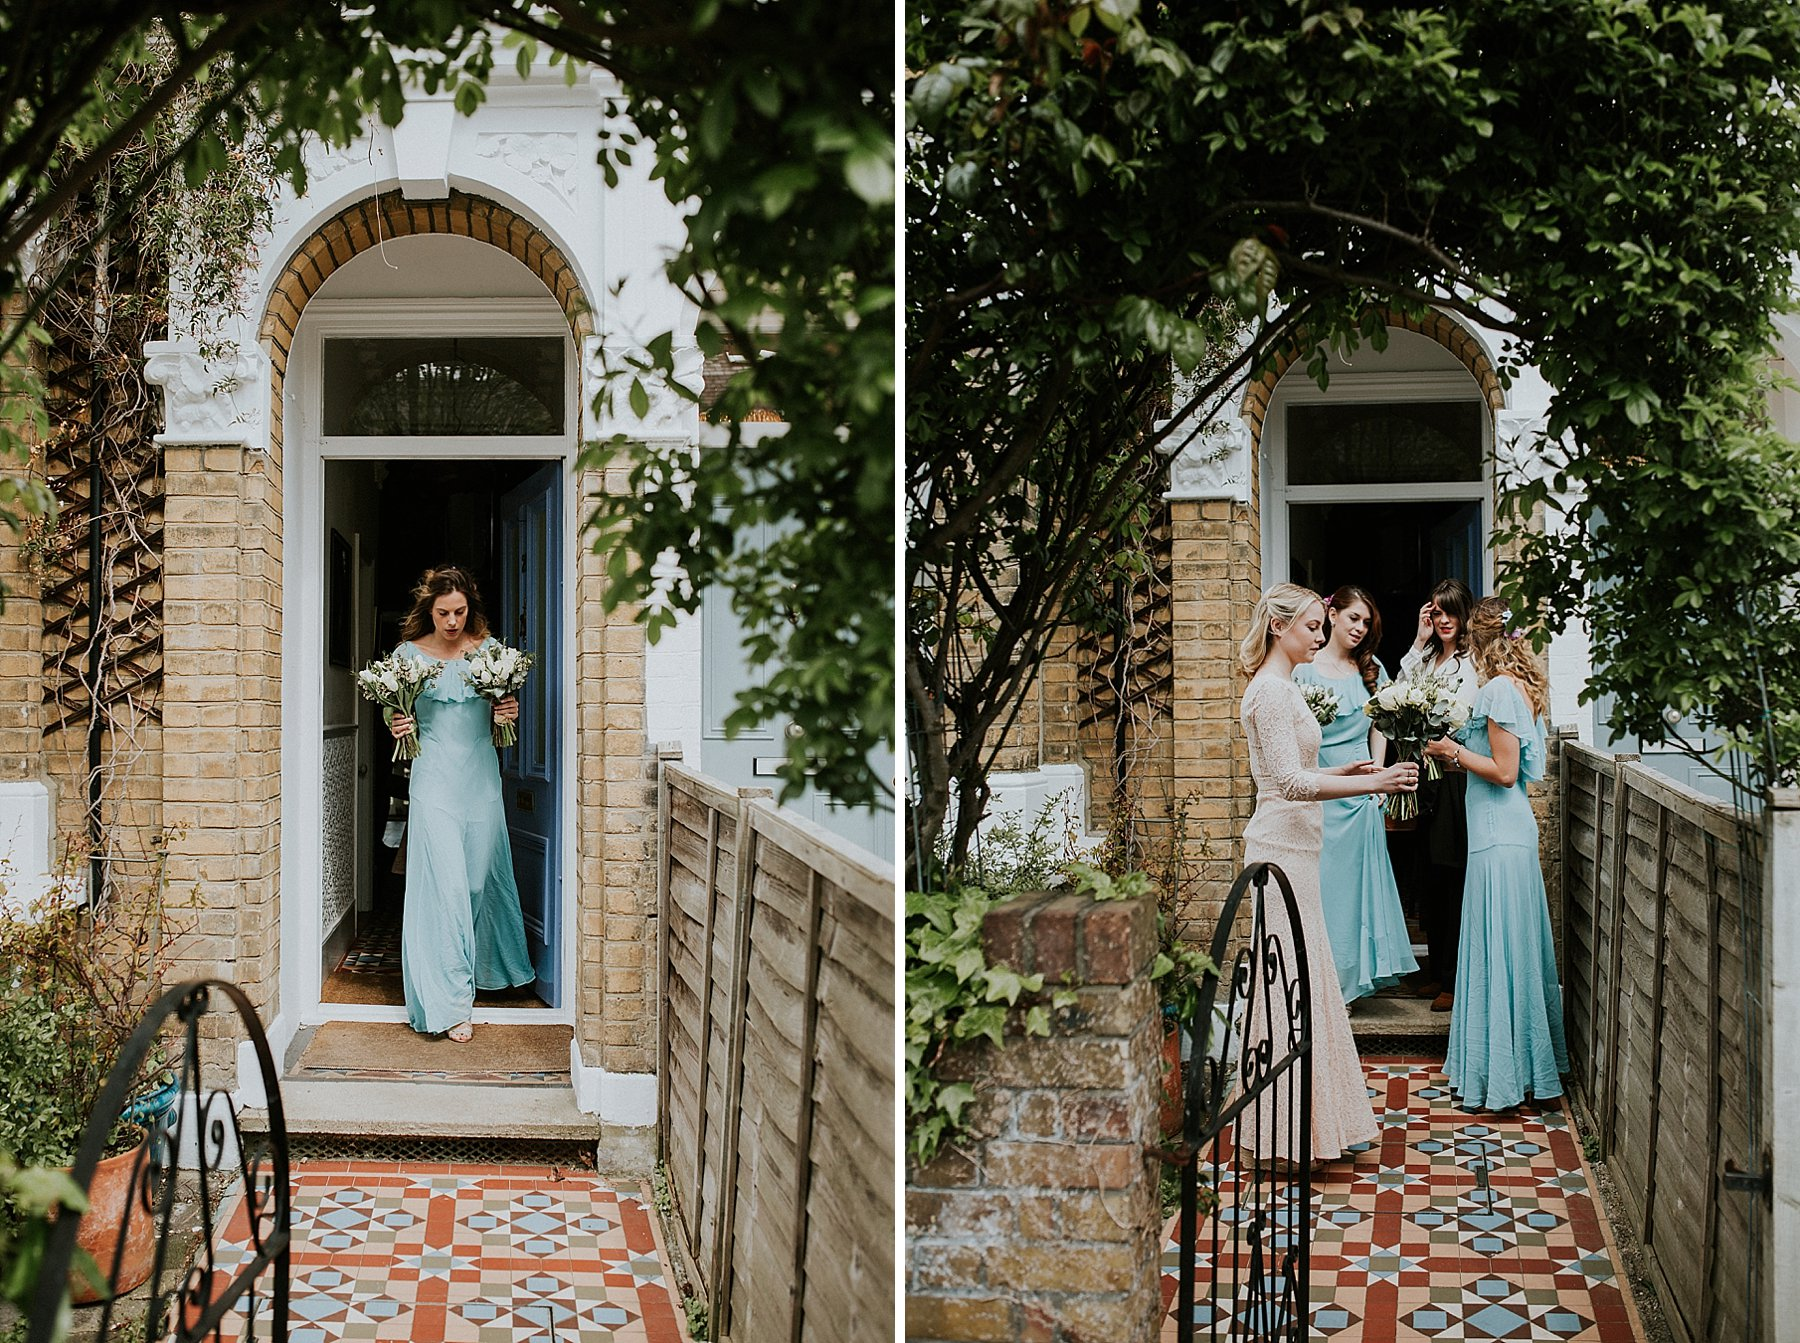 LD-117_Metro-Clapham-Common-wedding-photographer-London-blush-Diane-Von-Furstenburg-wedding-dress.jpg